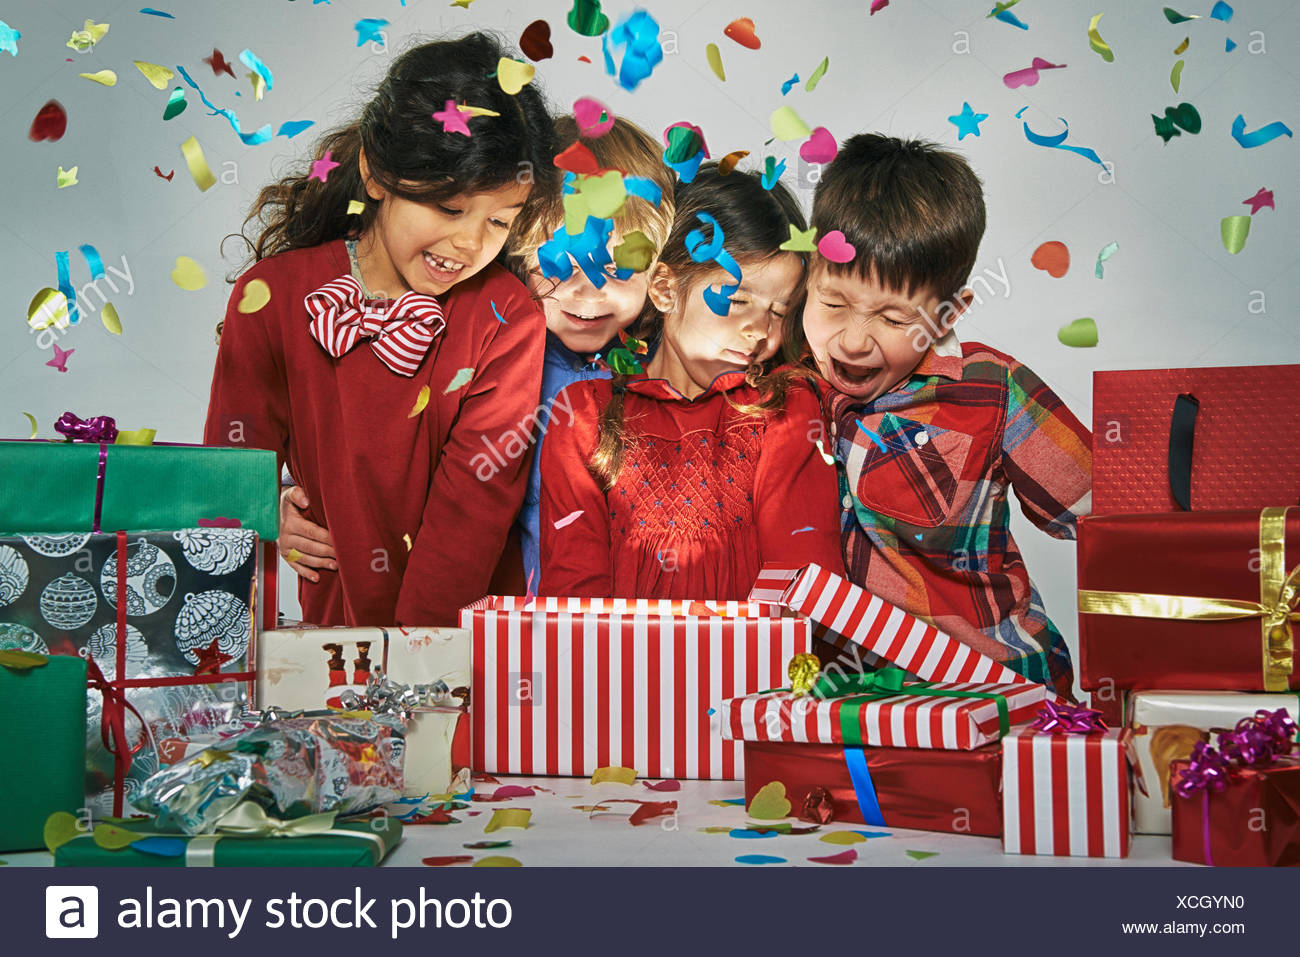 Surprised brothers and sisters unwrapping glowing christmas gift box with exploding confetti  sc 1 st  Alamy & Surprised brothers and sisters unwrapping glowing christmas gift box ...